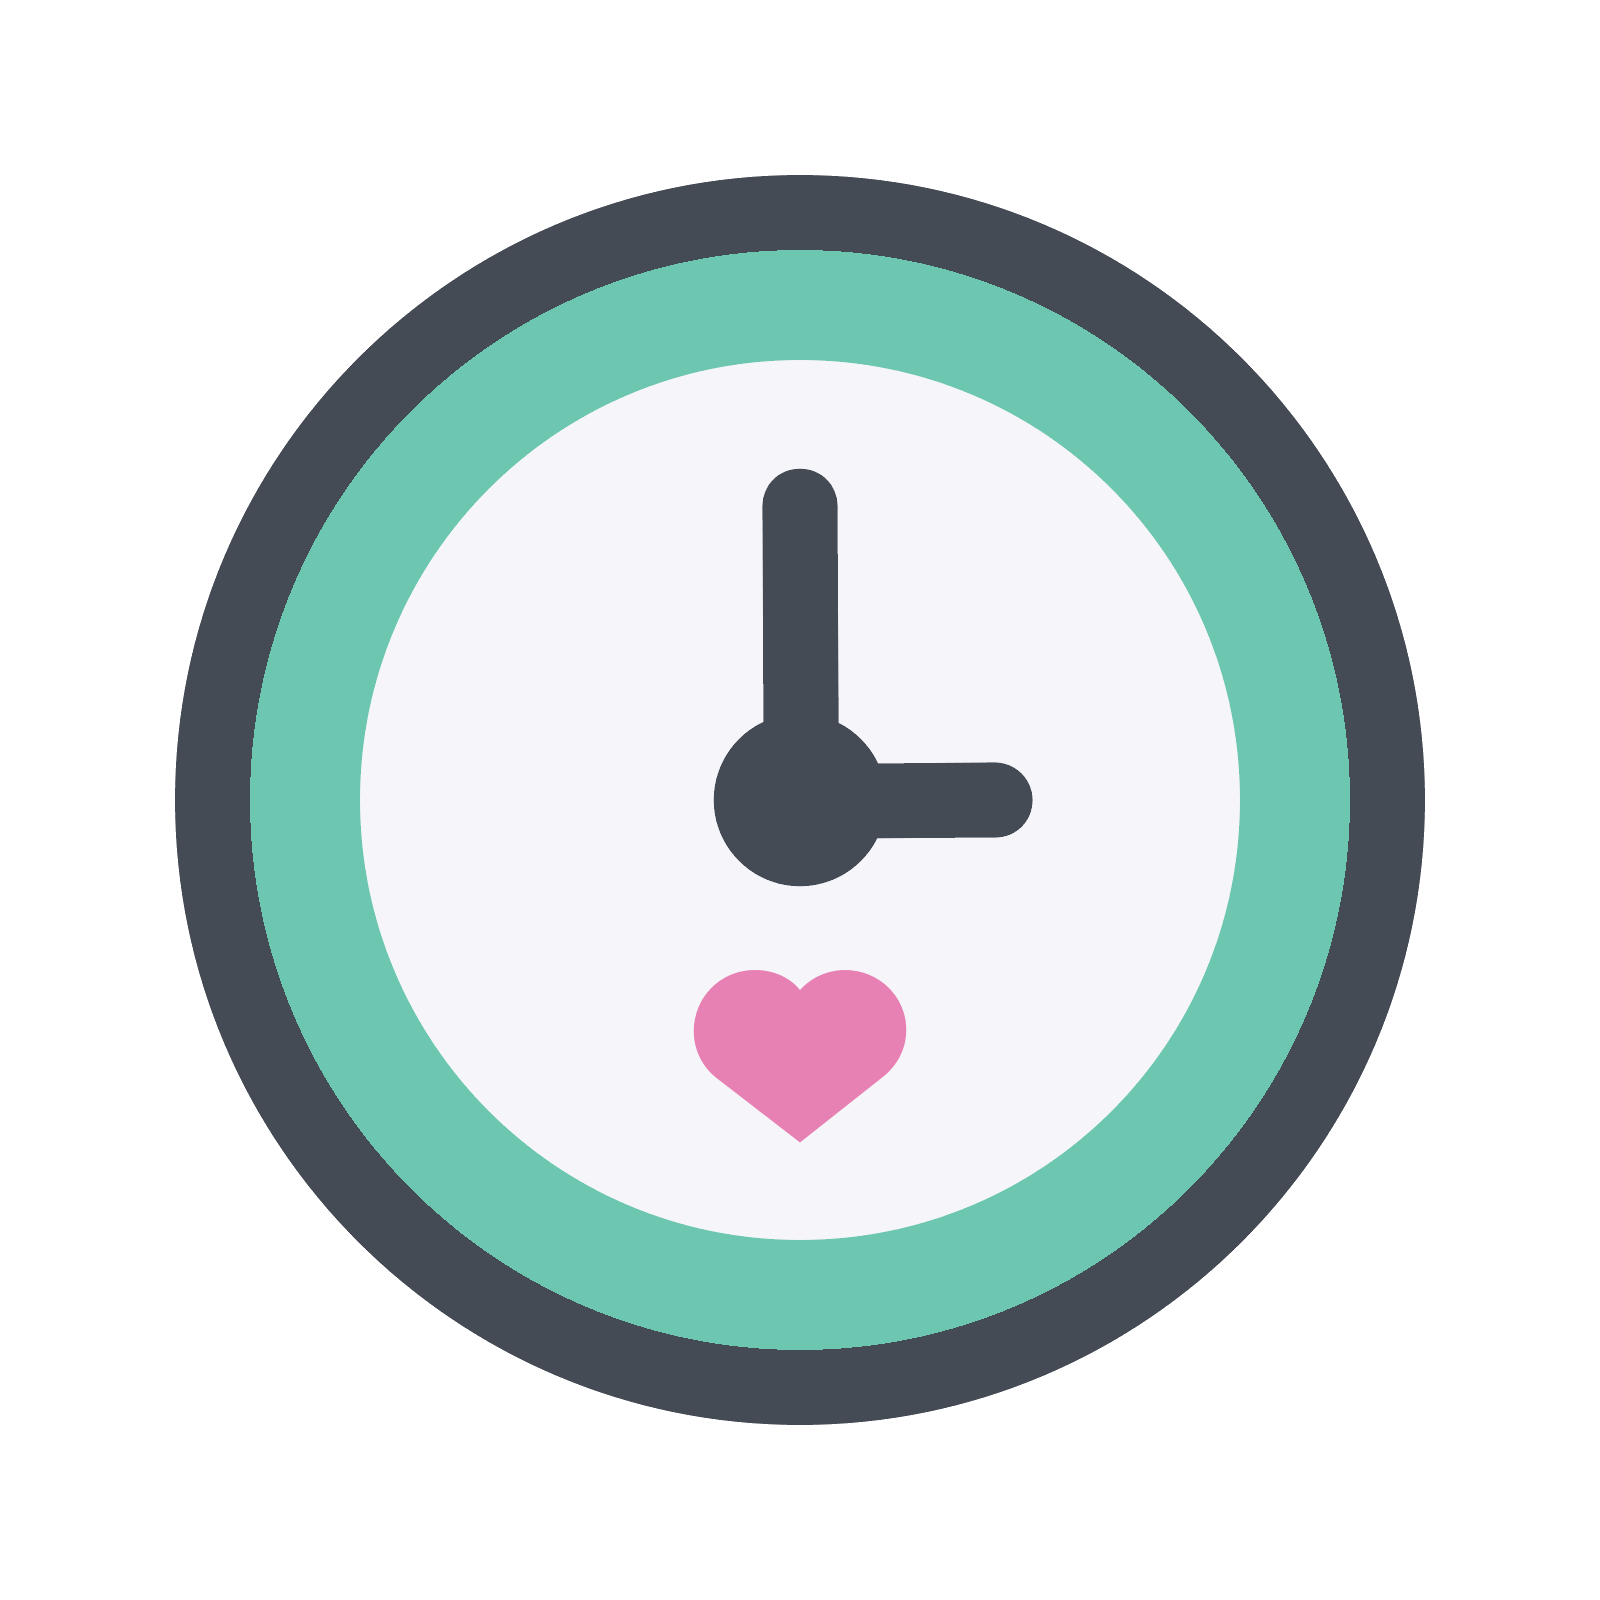 Time png. Icons free download and